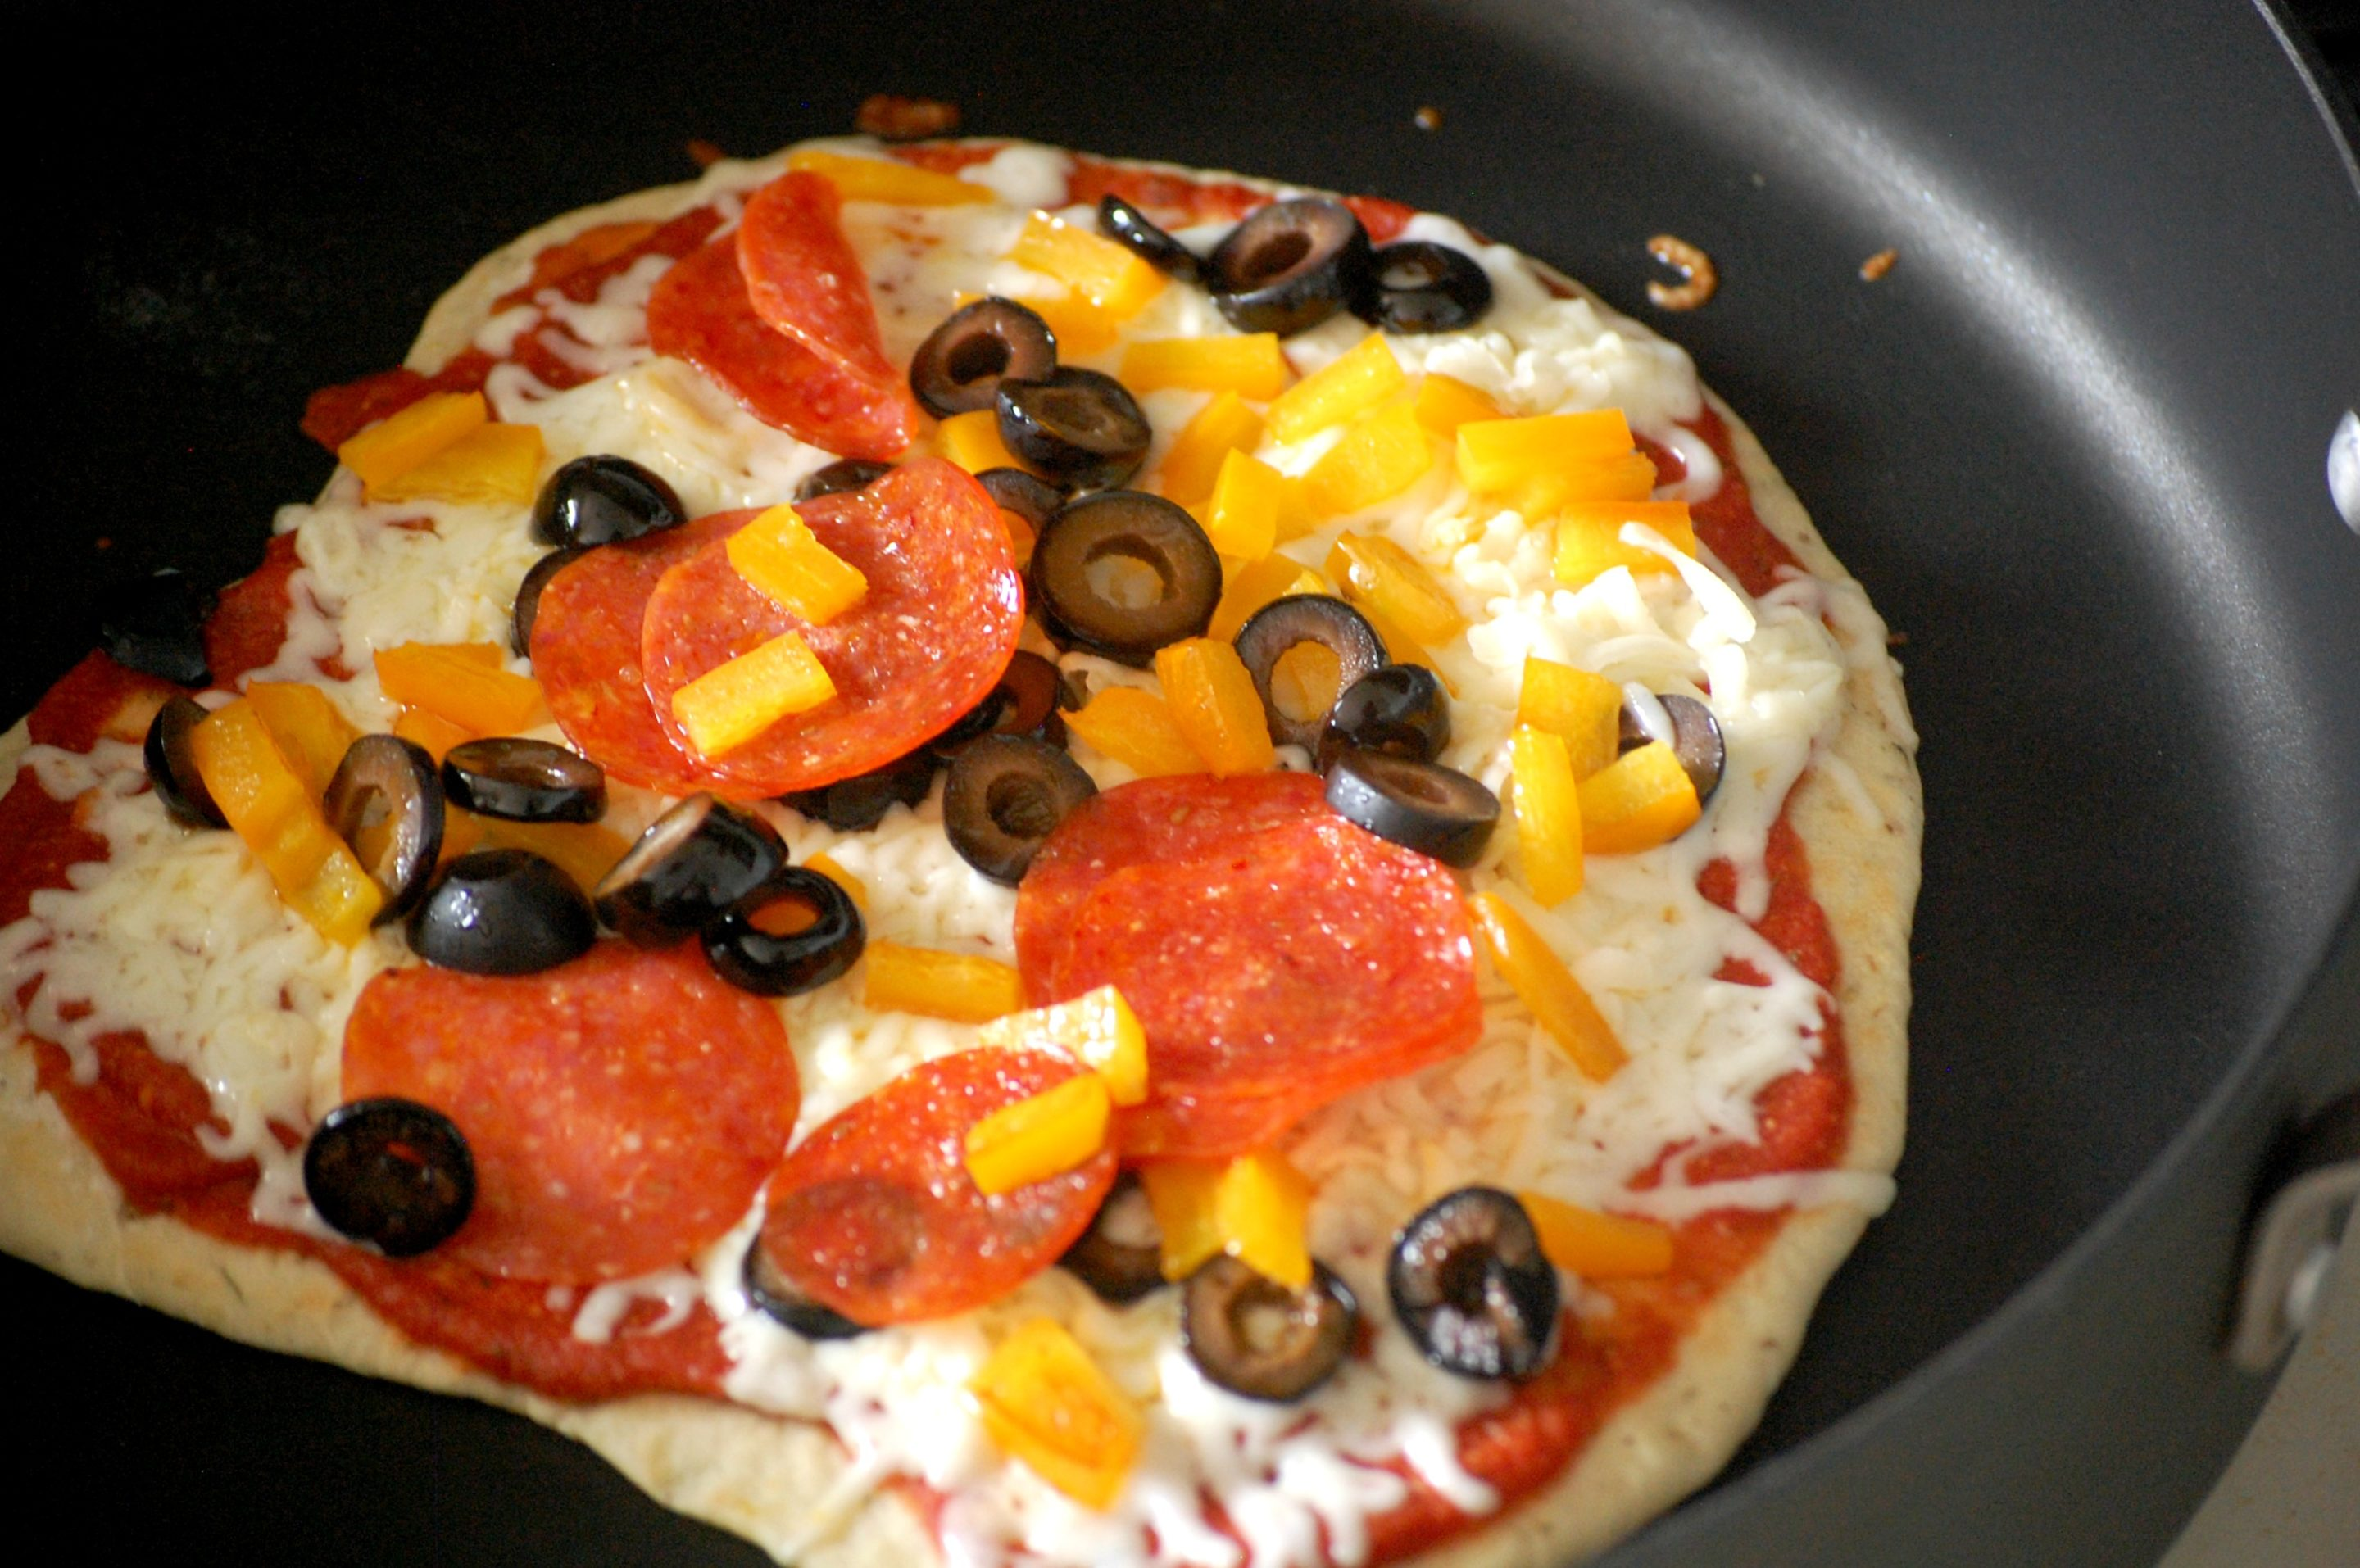 Don't turn on the oven to make pizza this summer! Use a skillet instead, and get some of the best pizza you've ever had in under an hour.